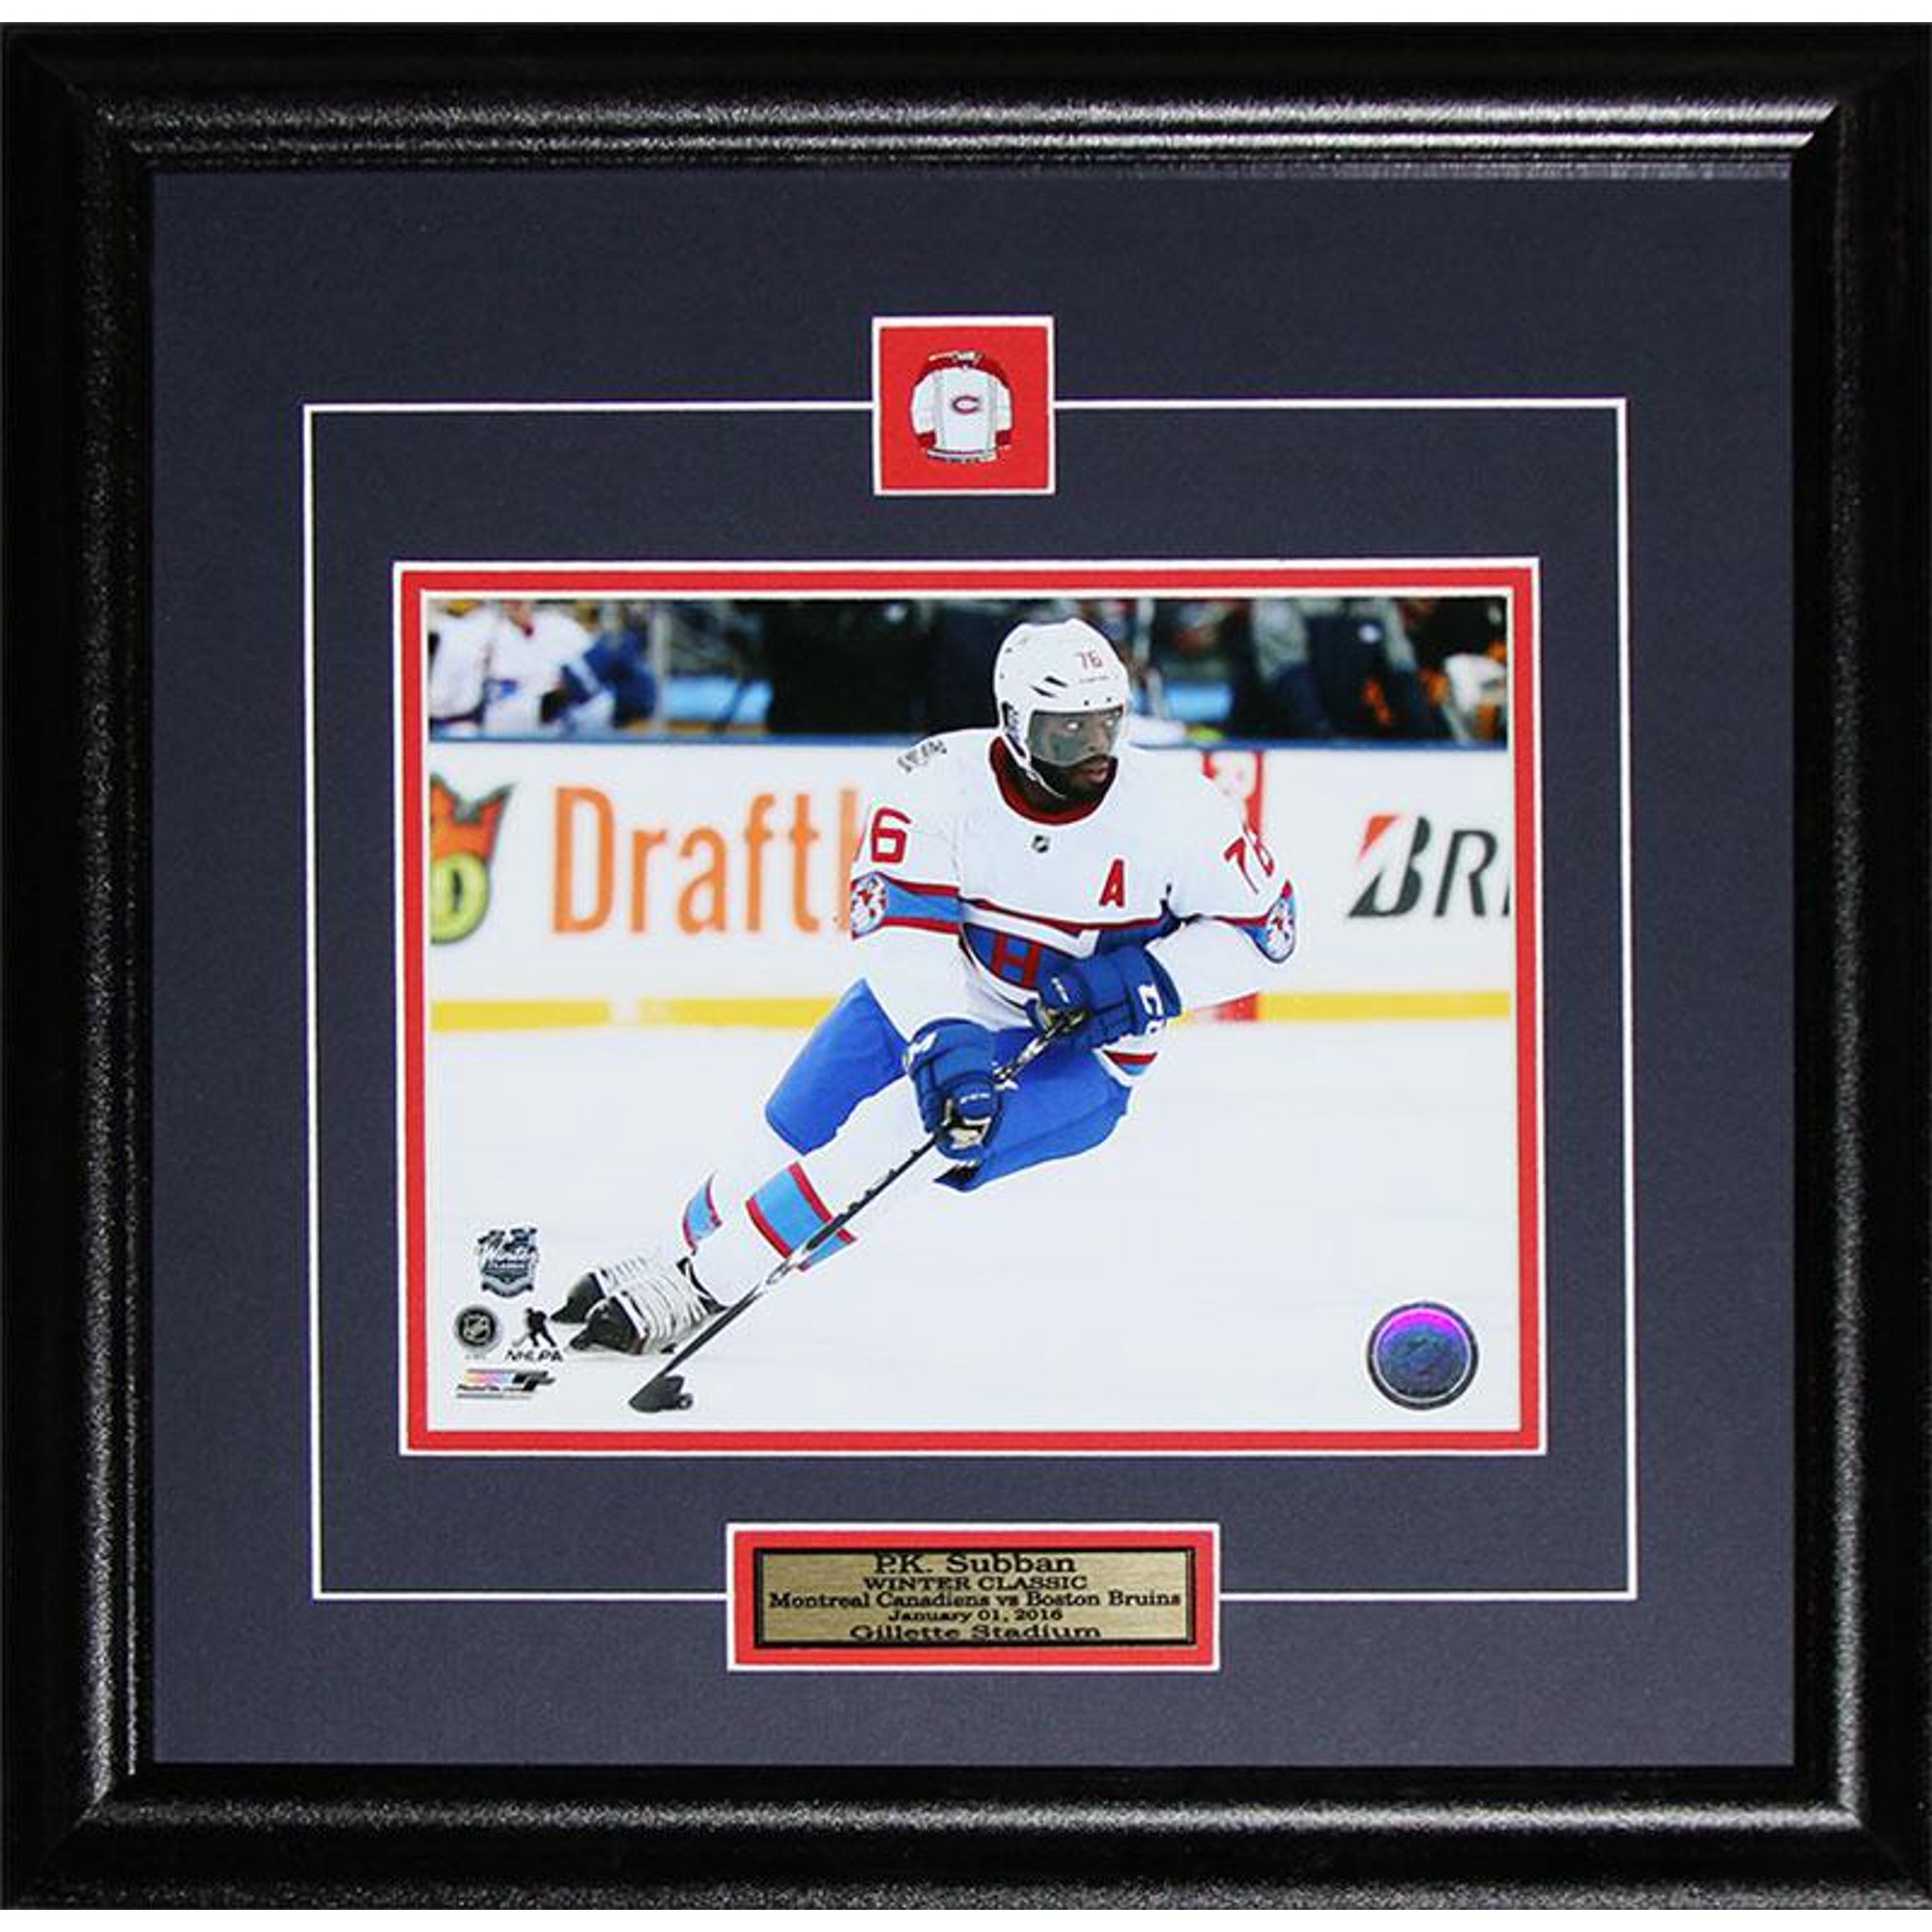 online store 247fe a42cd PK Subban Montreal Canadiens 2016 Winter Classic 8x10 NHL ...